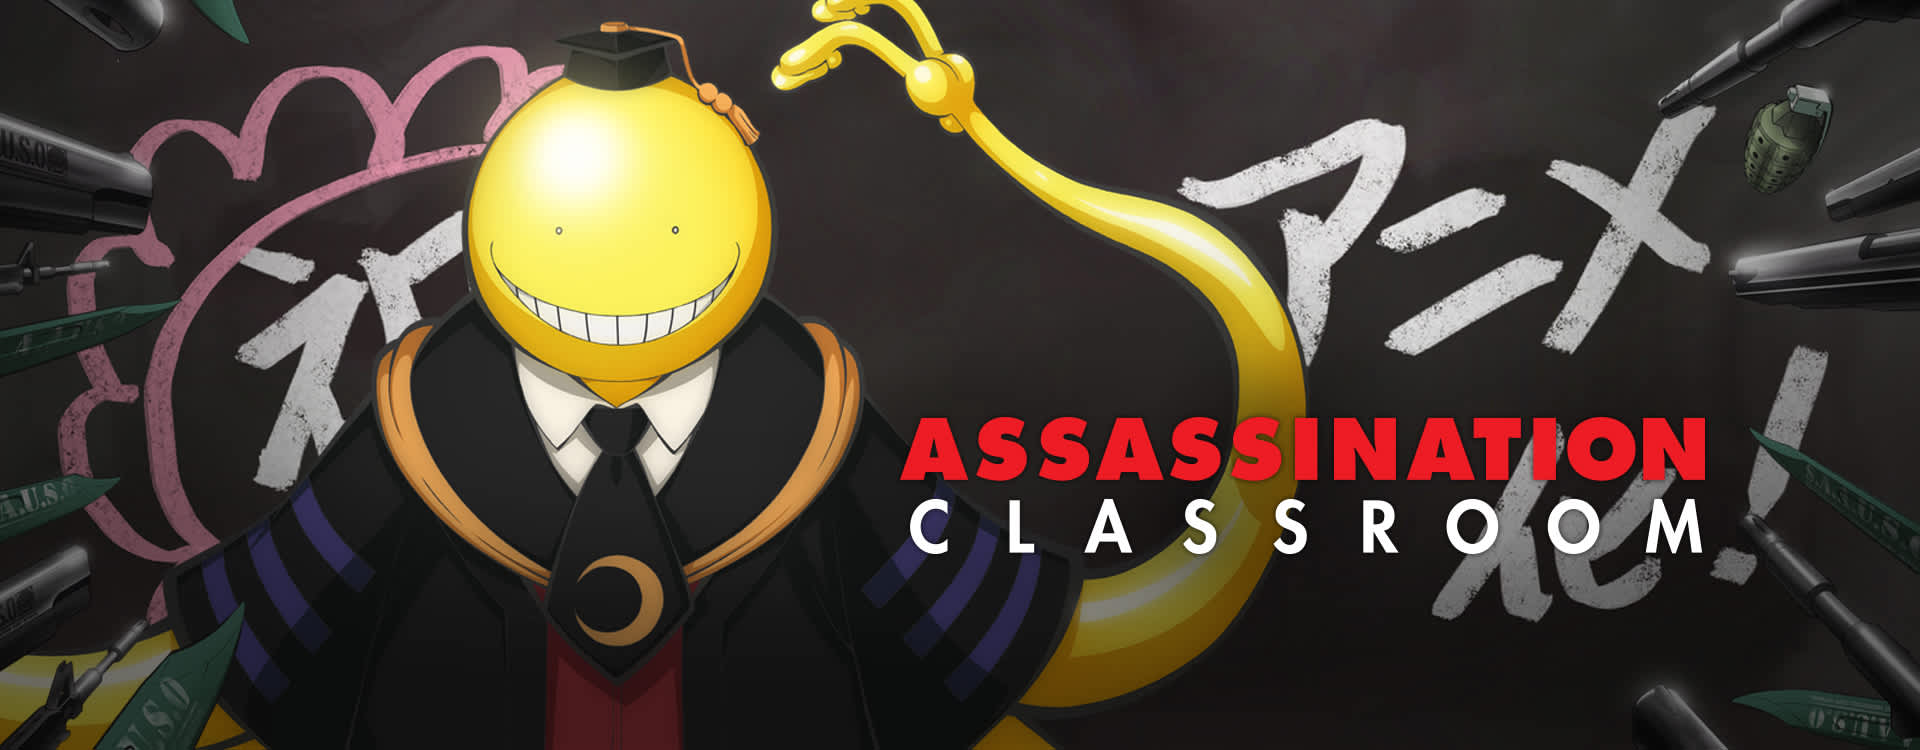 Watch Assassination Classroom Episodes Sub & Dub | Action/Adventure